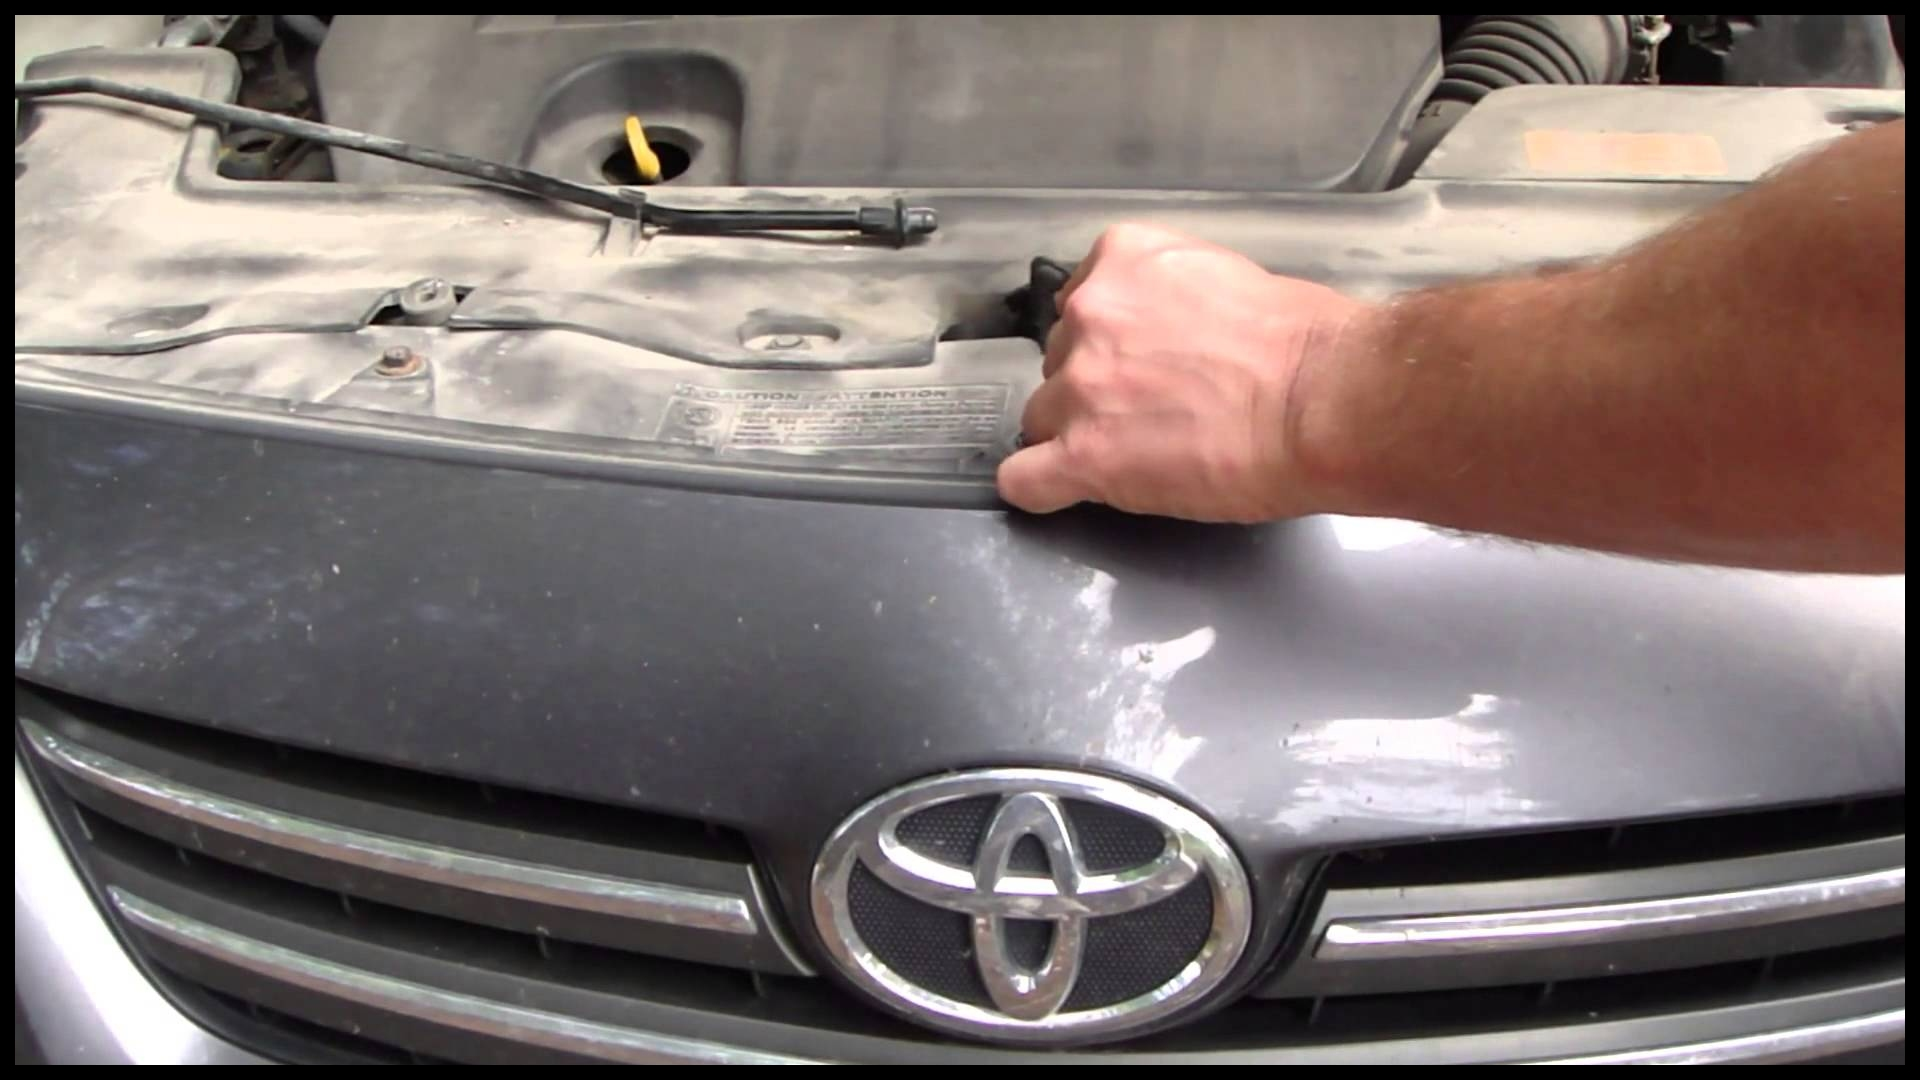 How to open bonnet and hood Toyota Corolla Years 2007 to 2014